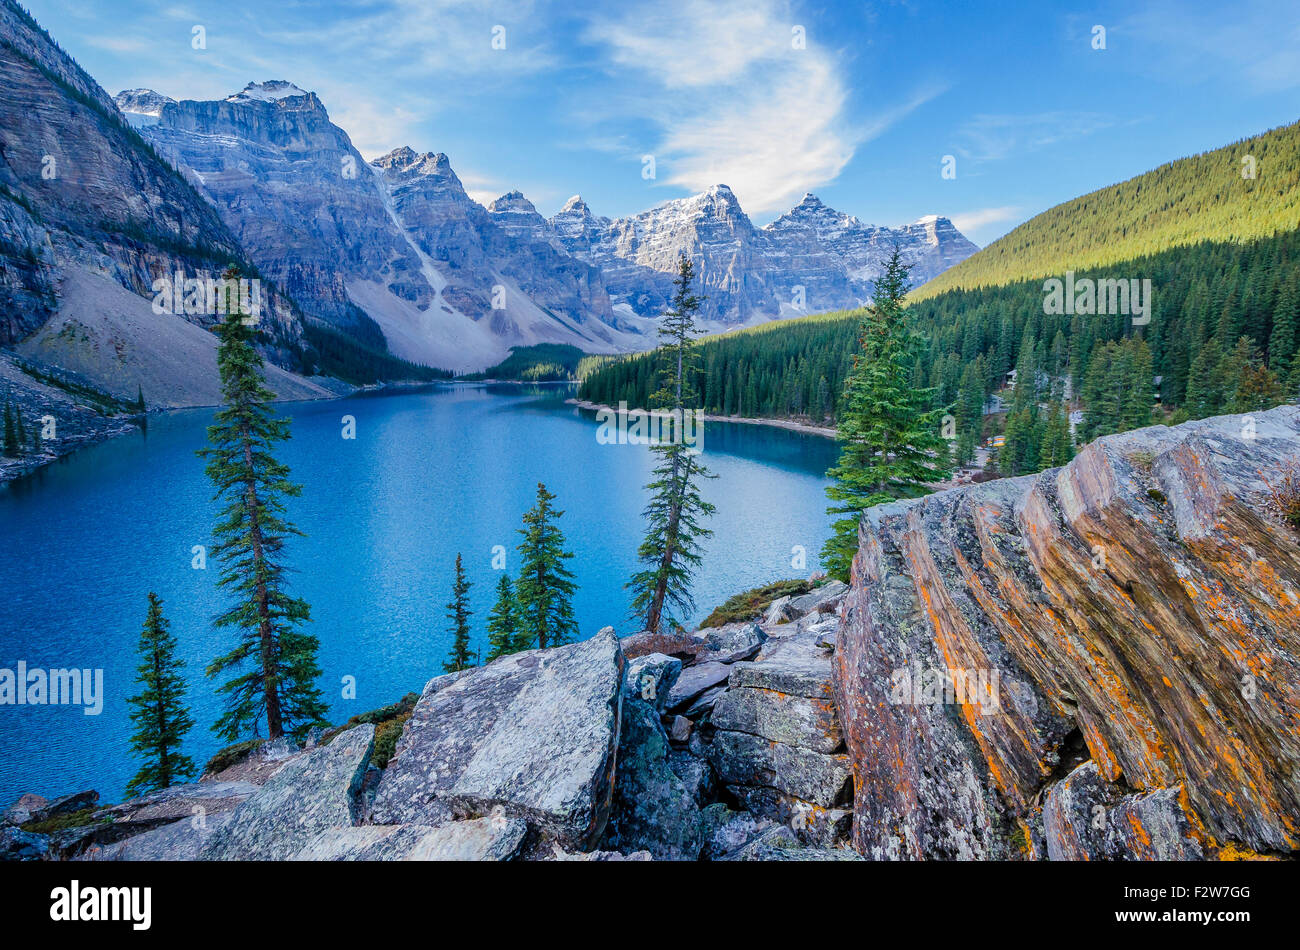 Moraine Lake,  Banff National Park, Alberta Canada - Stock Image